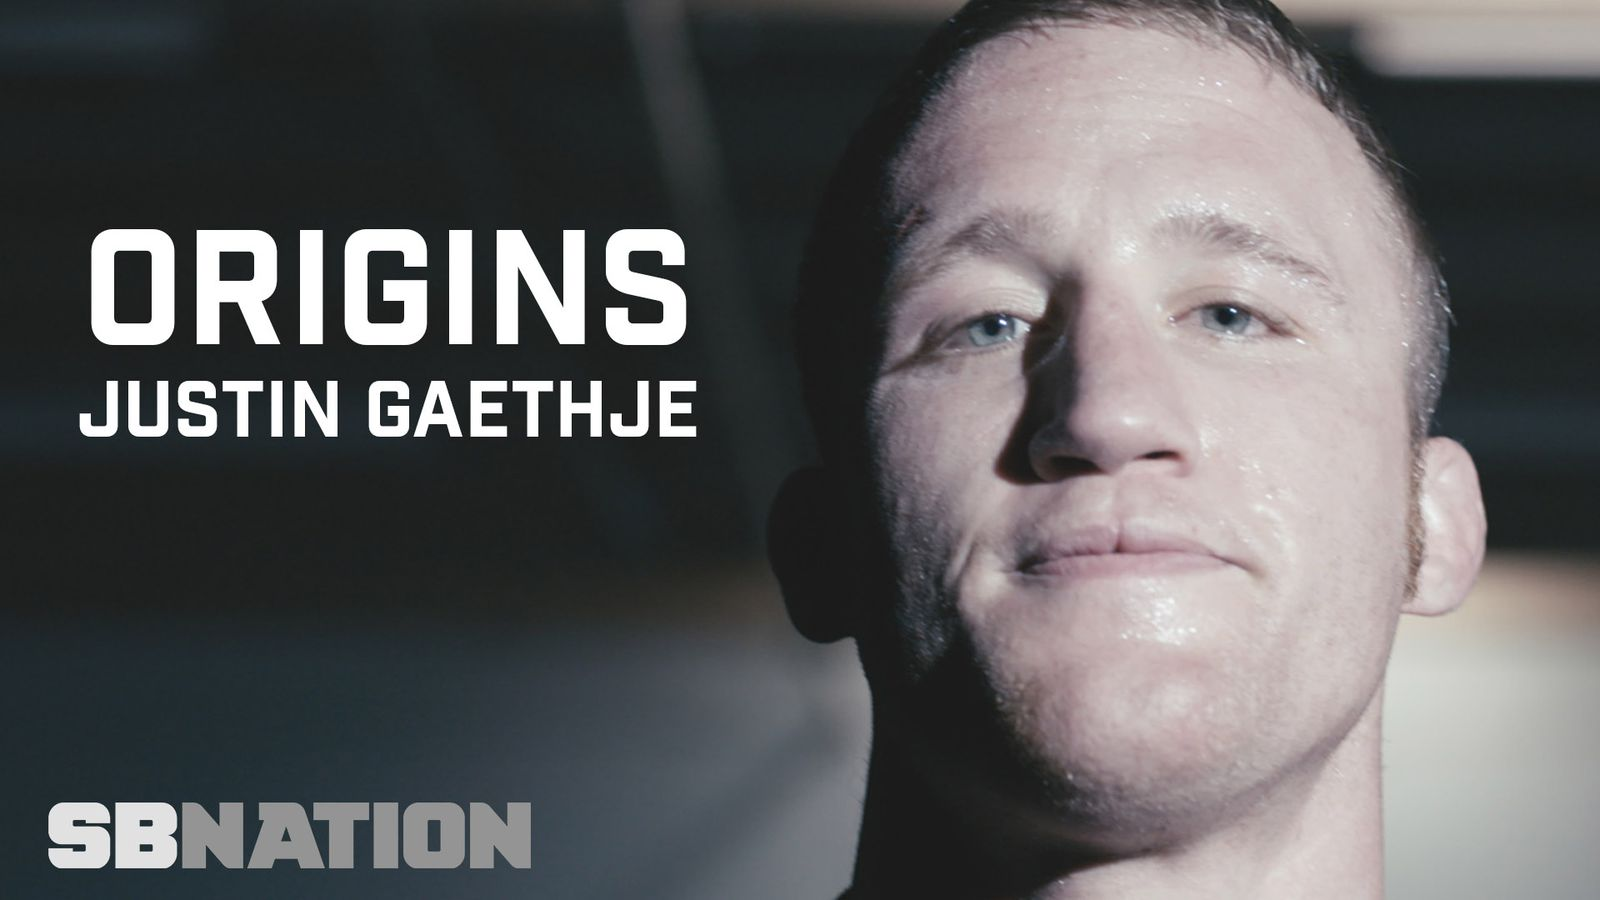 The story of Justin Gaethje's journey to the UFC